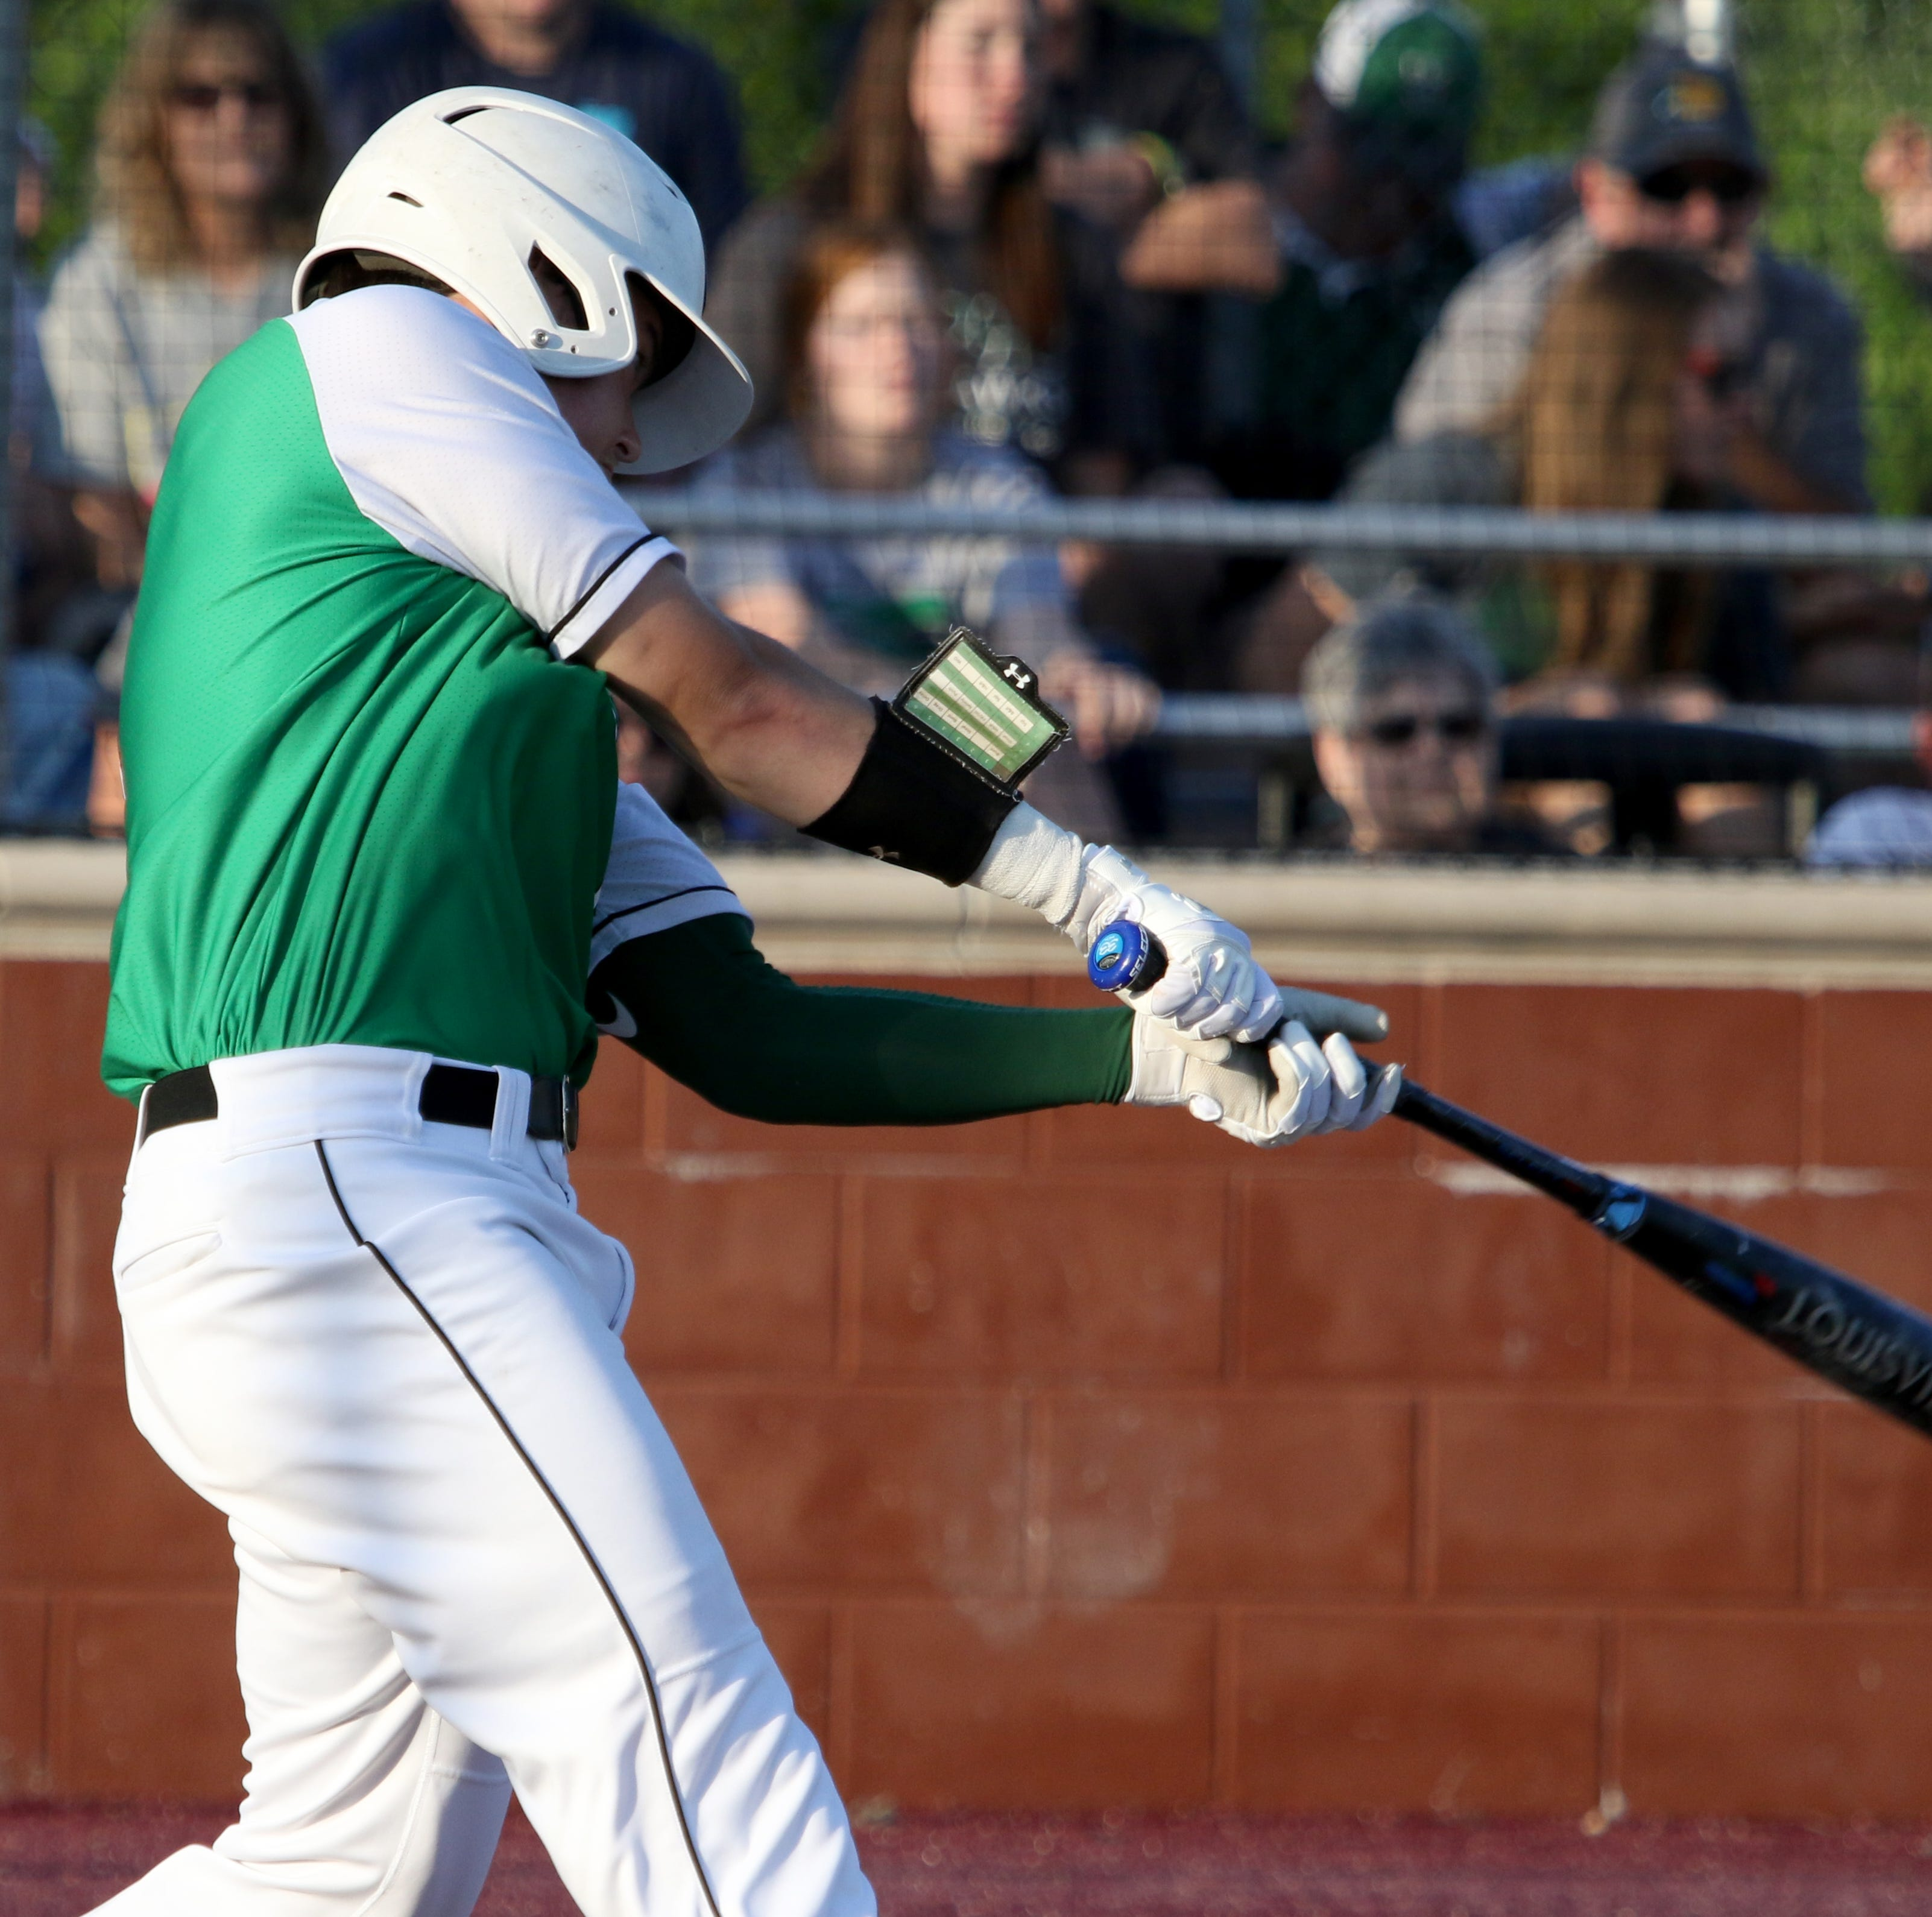 Baseball playoffs: Iowa Park keeps roll going with impressive sweep over Decatur